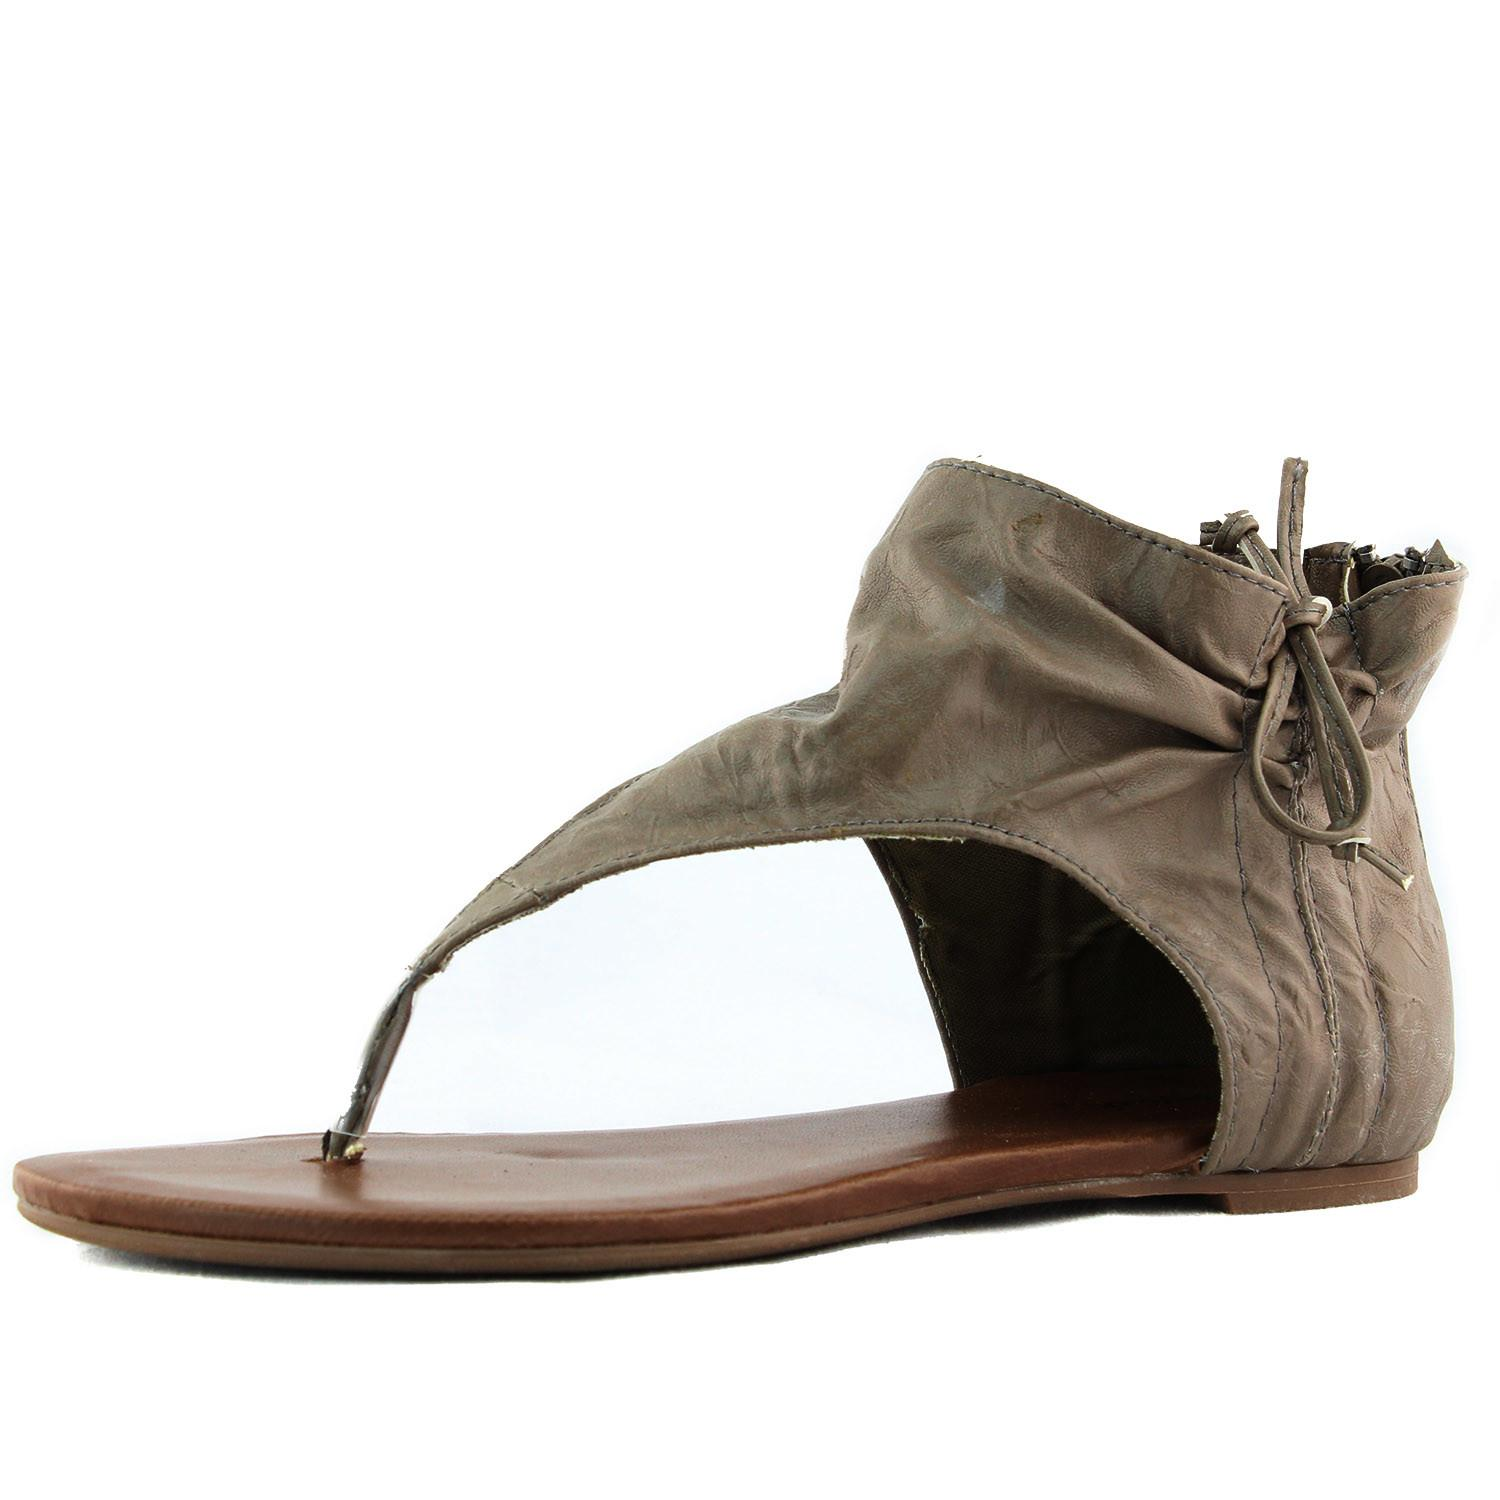 Covered Sandals Mens Fishermen Leather